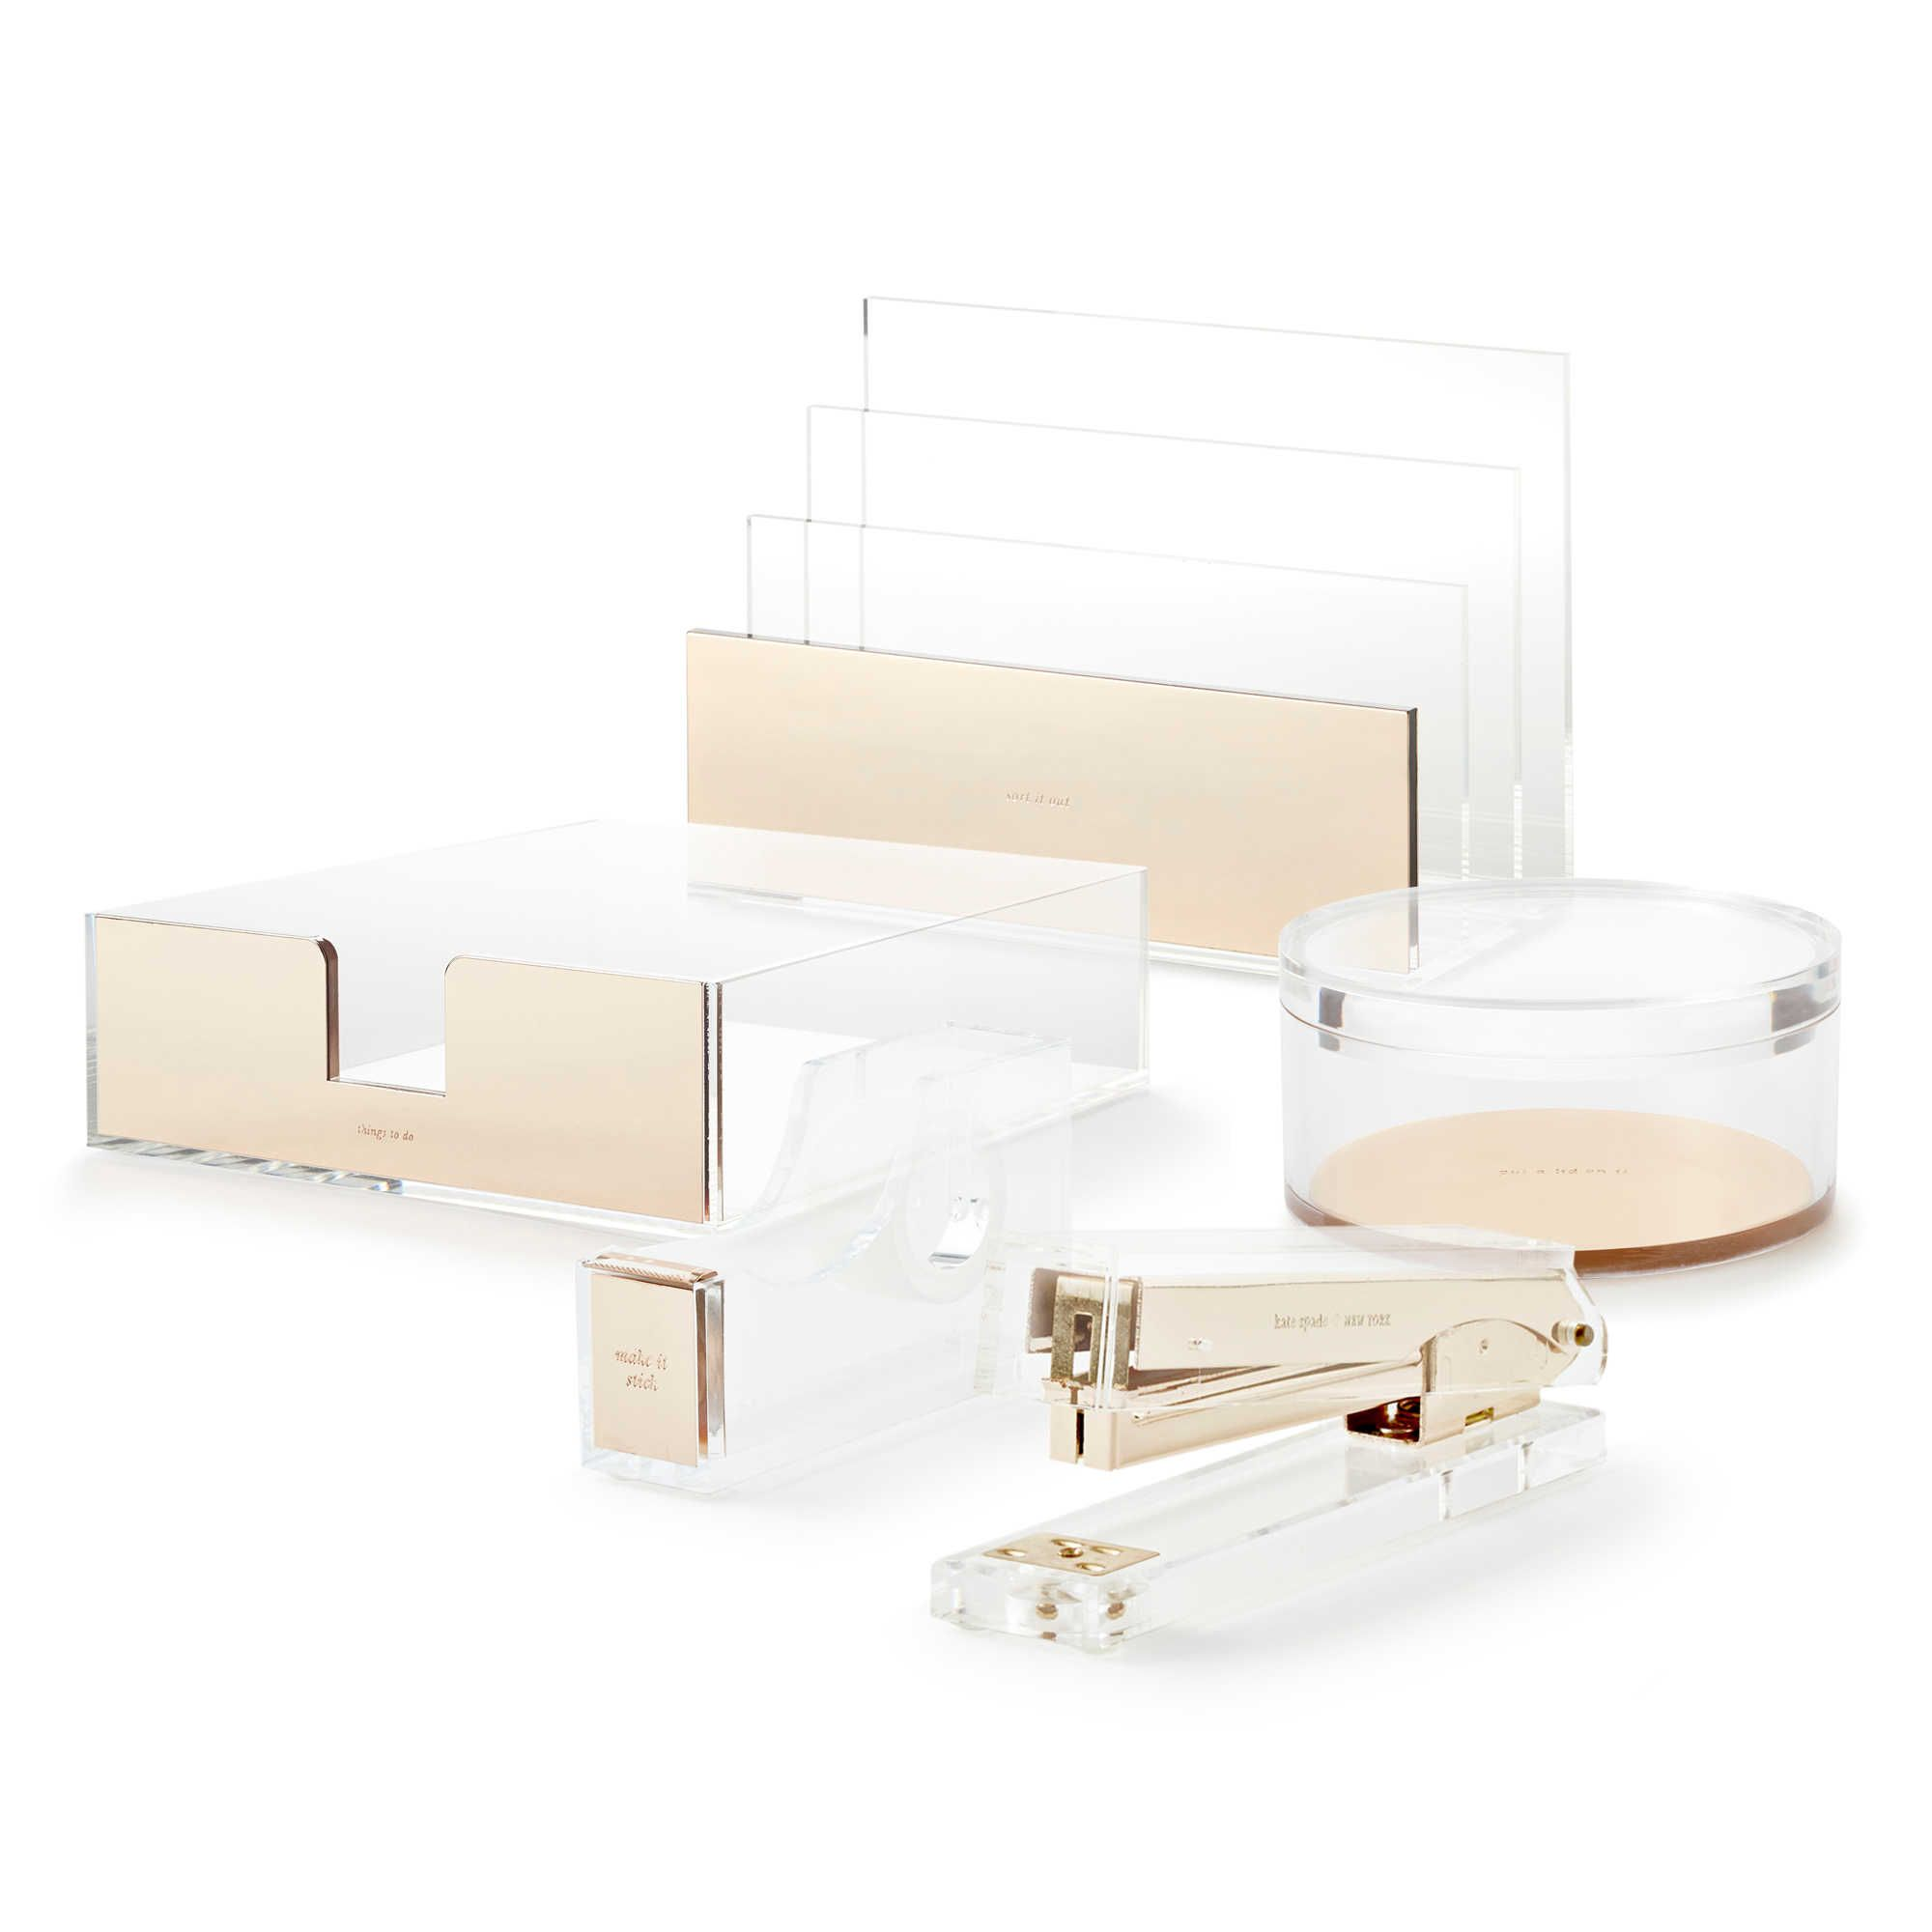 Kate Spade New York Strike Gold Desk Accessory Collection Office Supplies Desk Accessories Kate Spade Desk Accessories Desk Organization Office